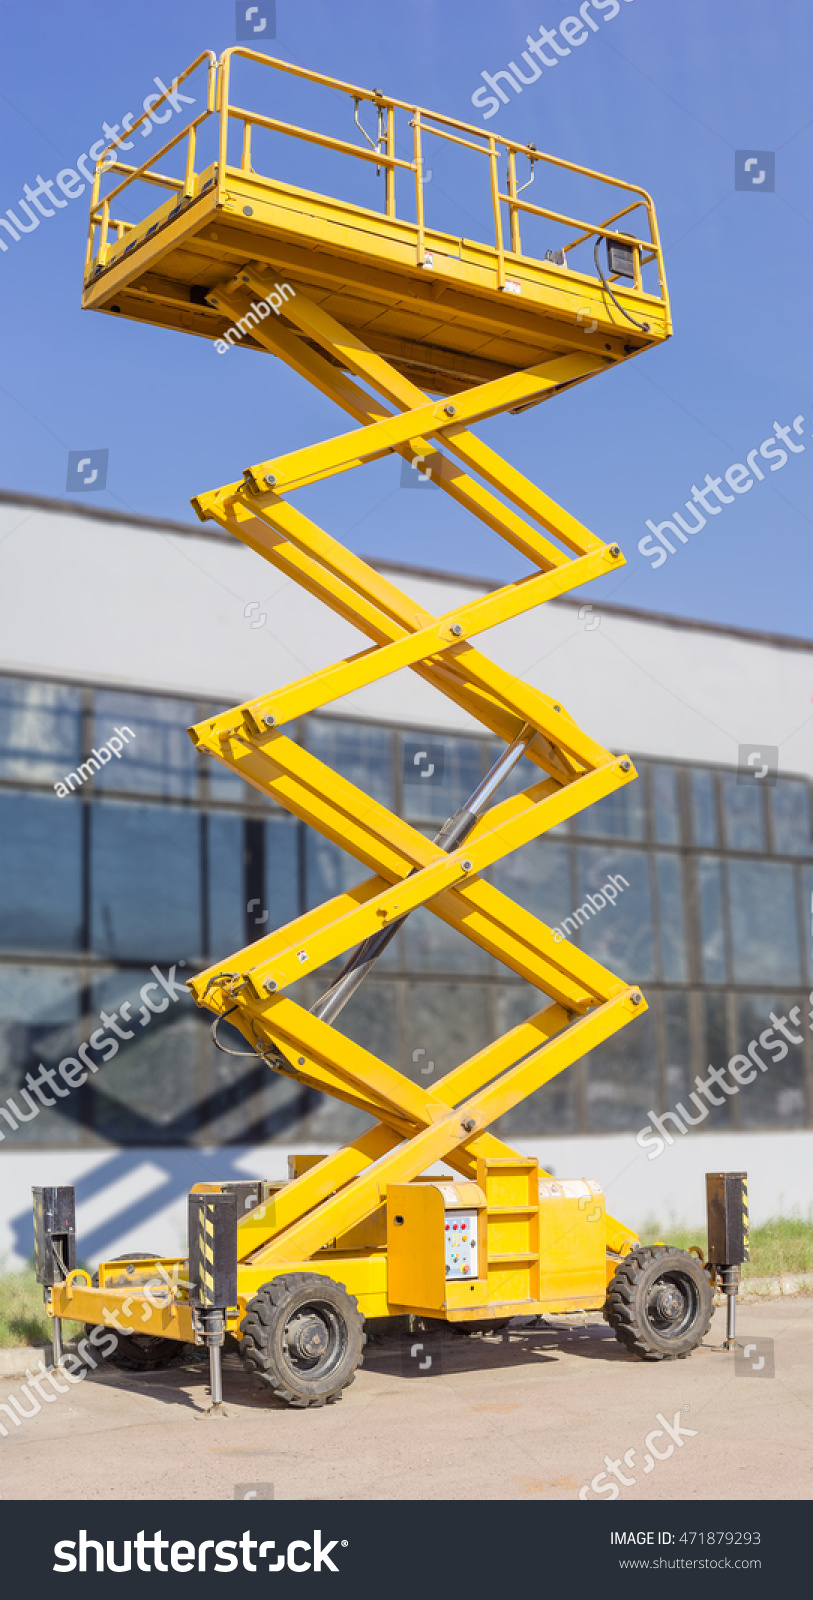 Construction Boom Lift Hydraulic : Mobile aerial work platform yellow scissor stock photo